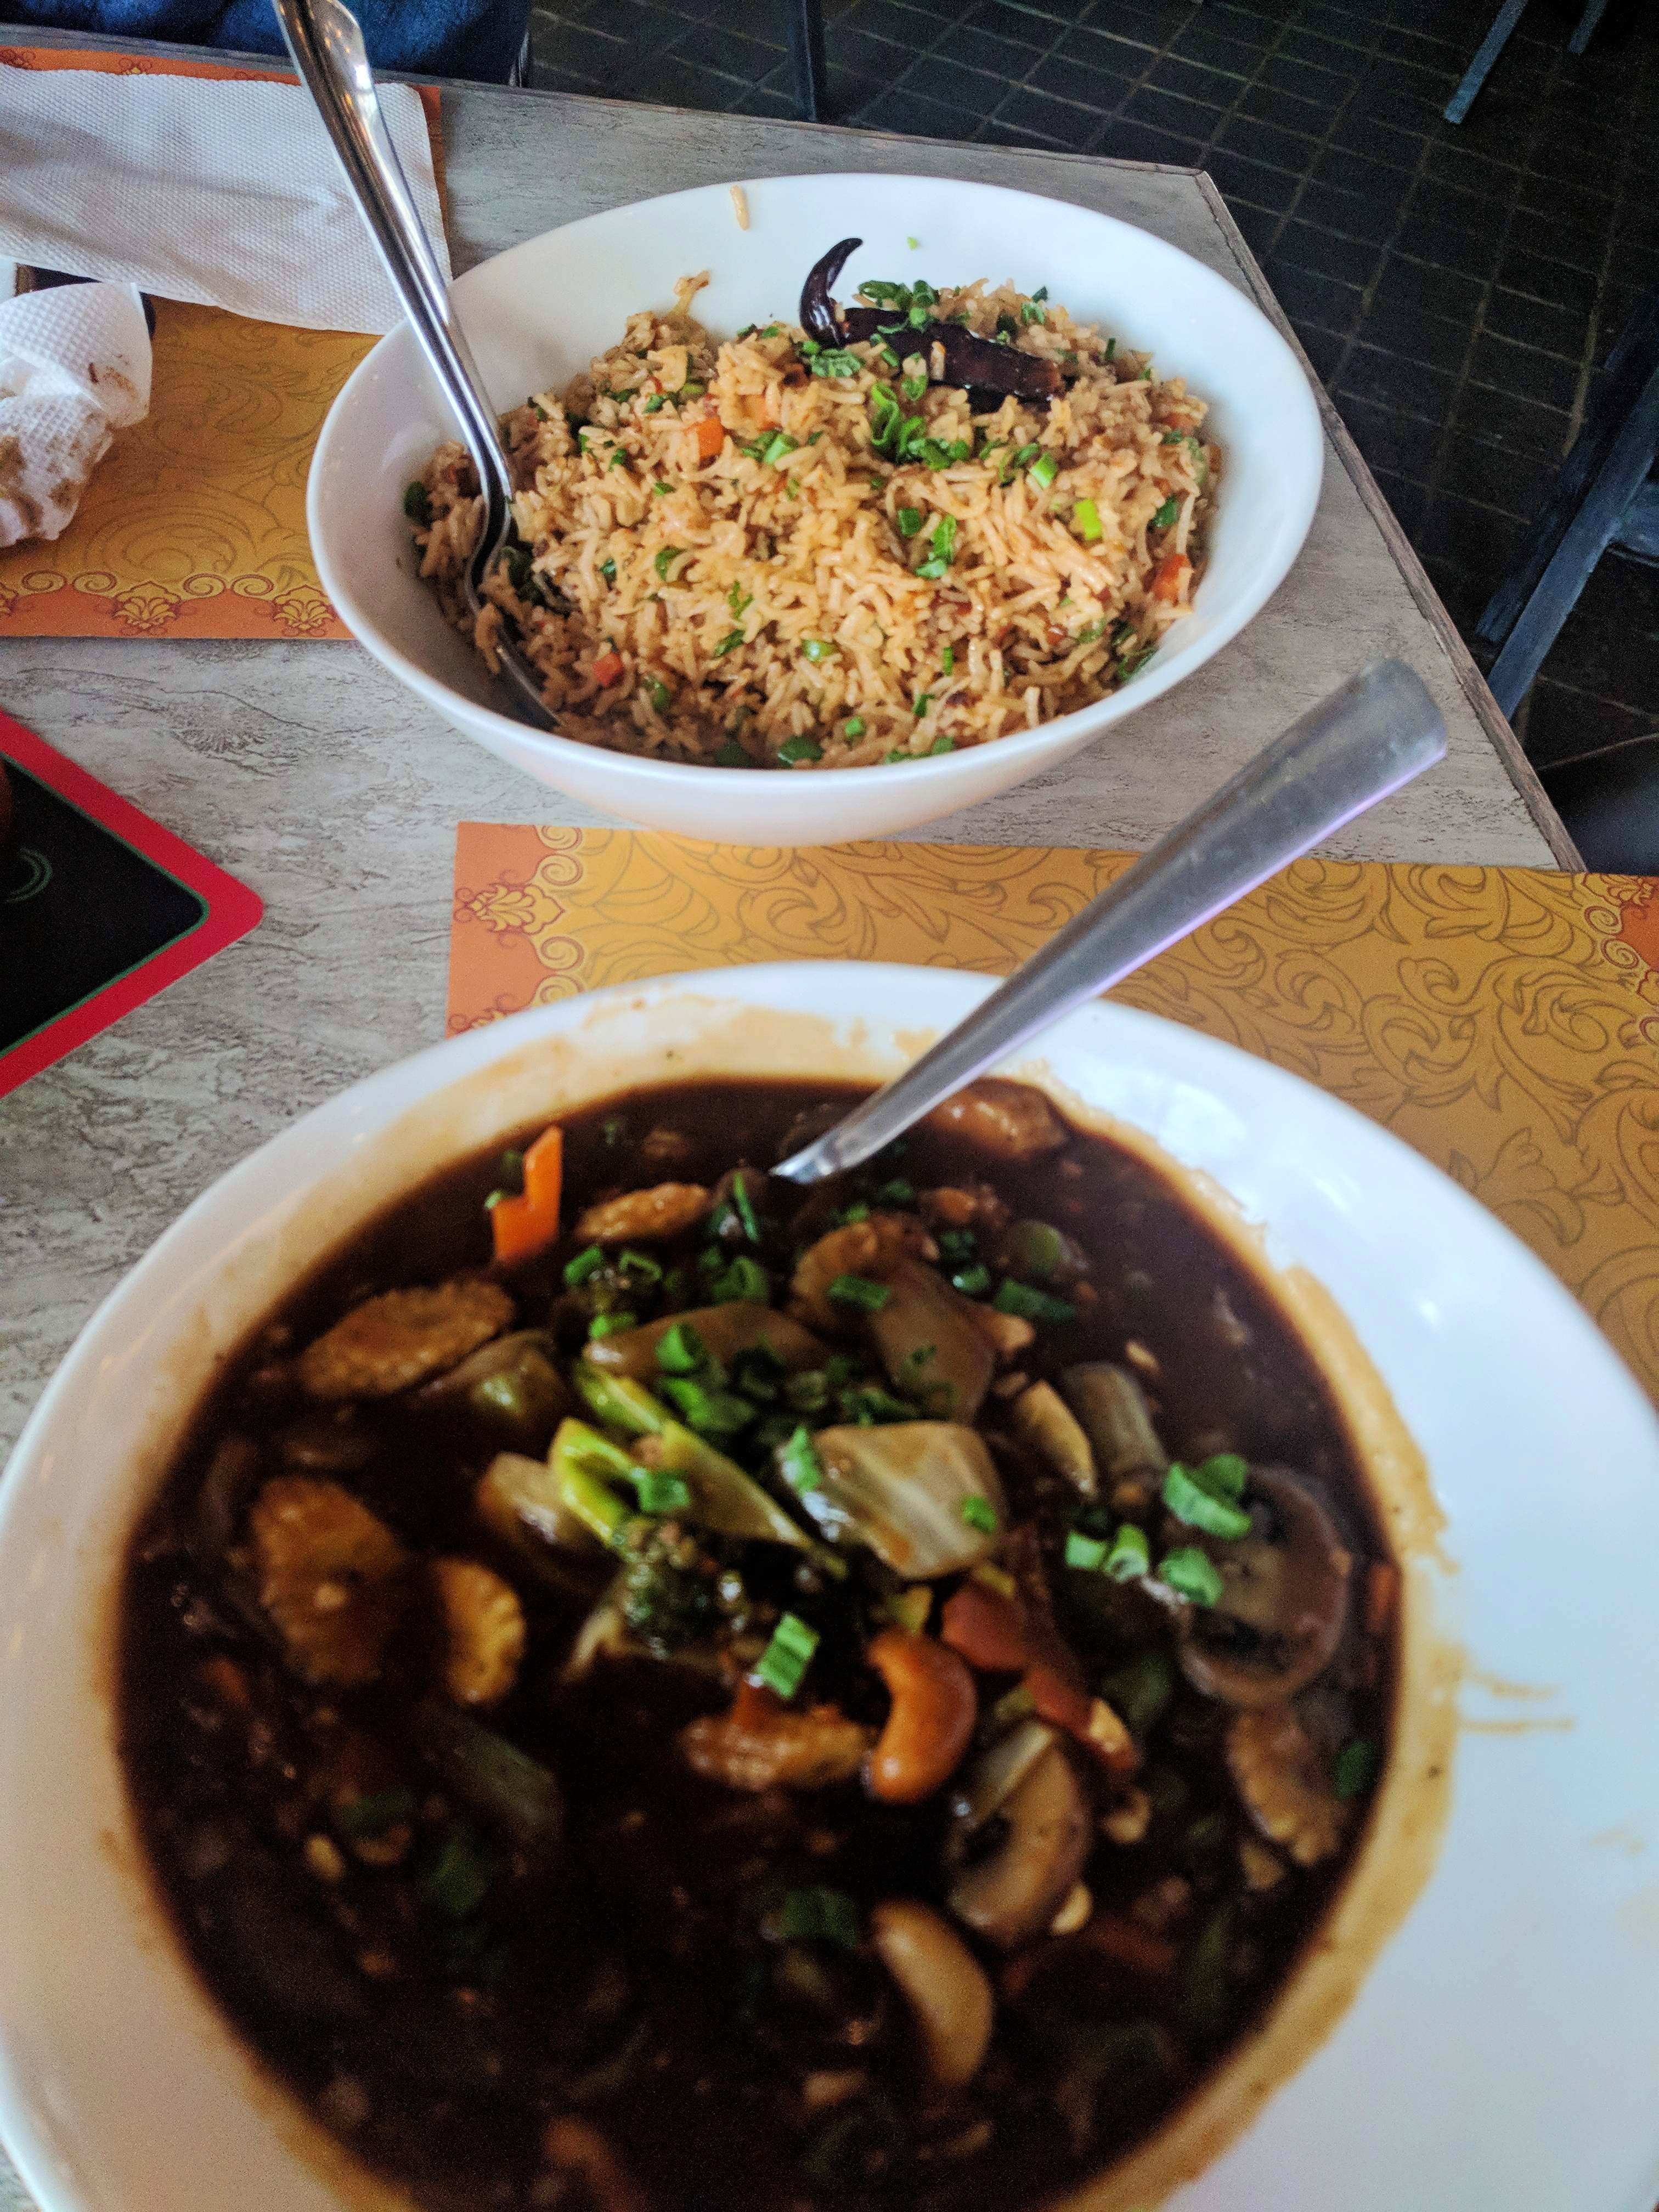 Dish,Food,Cuisine,Ingredient,Produce,Meat,Dinuguan,Recipe,Curry,Chinese food